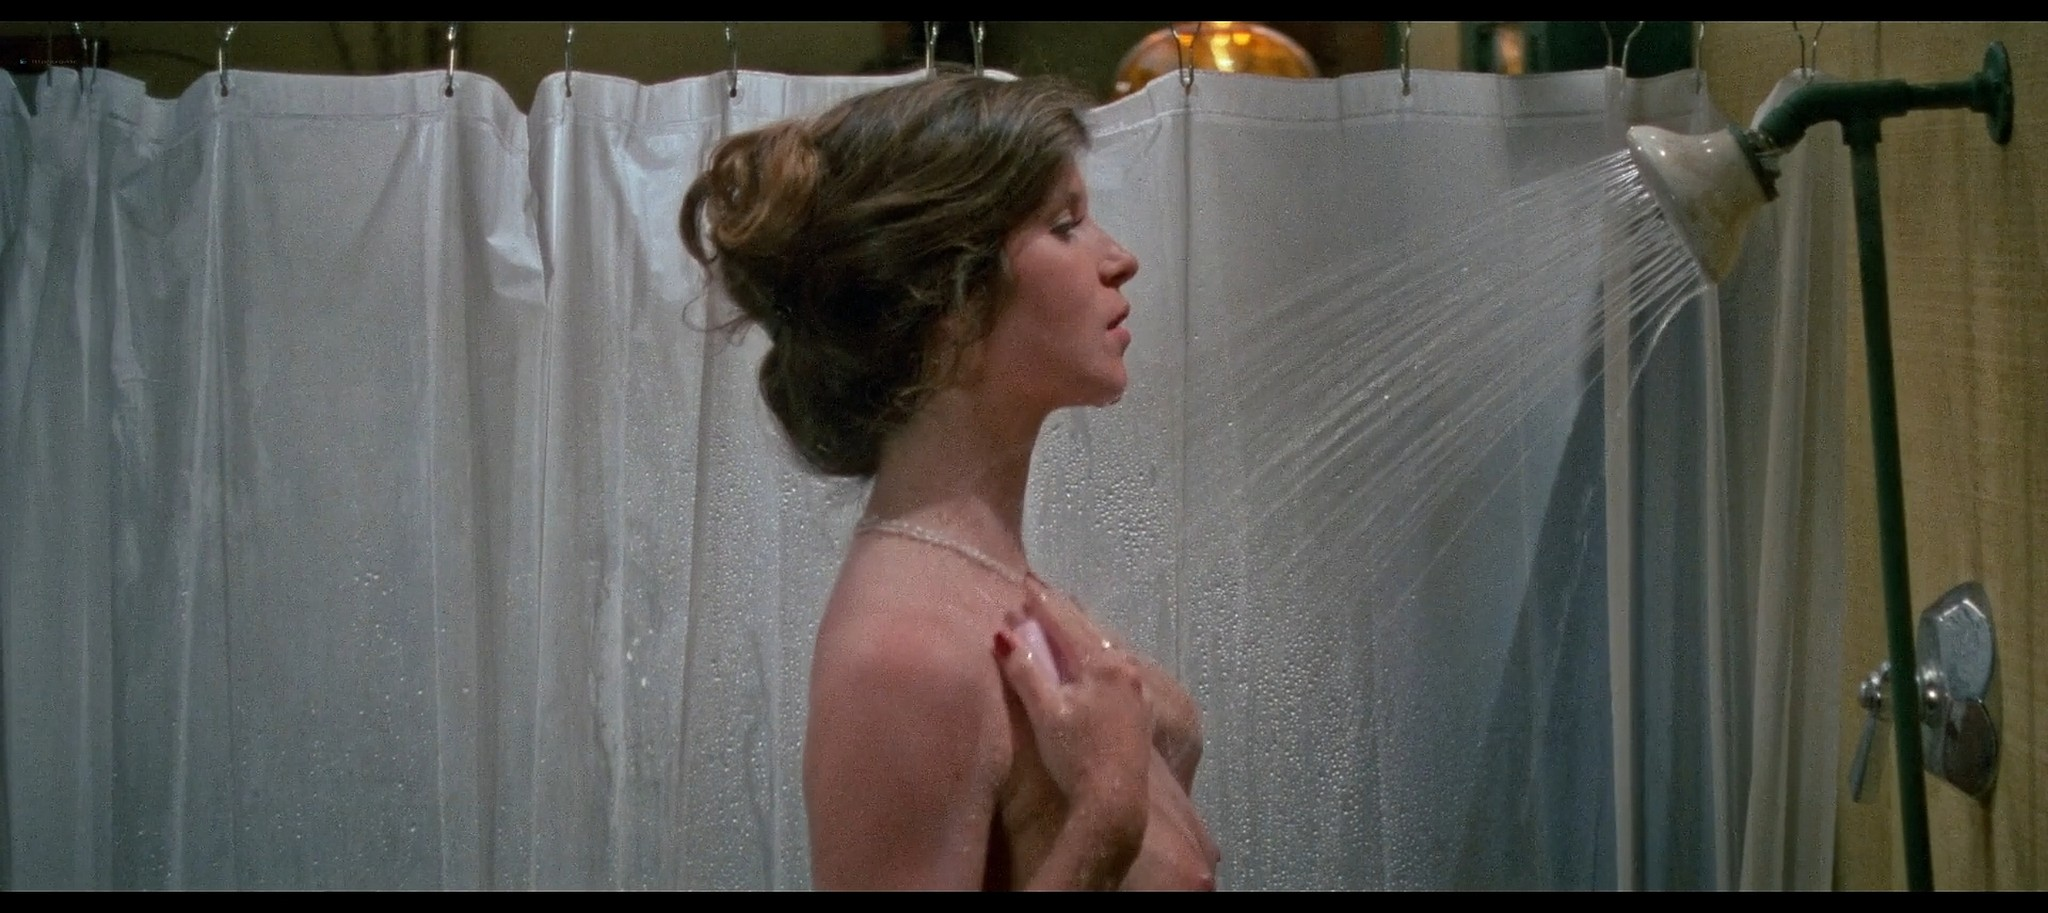 Tracie Savage nude in the shower Friday the 13th Part 3 1982 BluRay 7